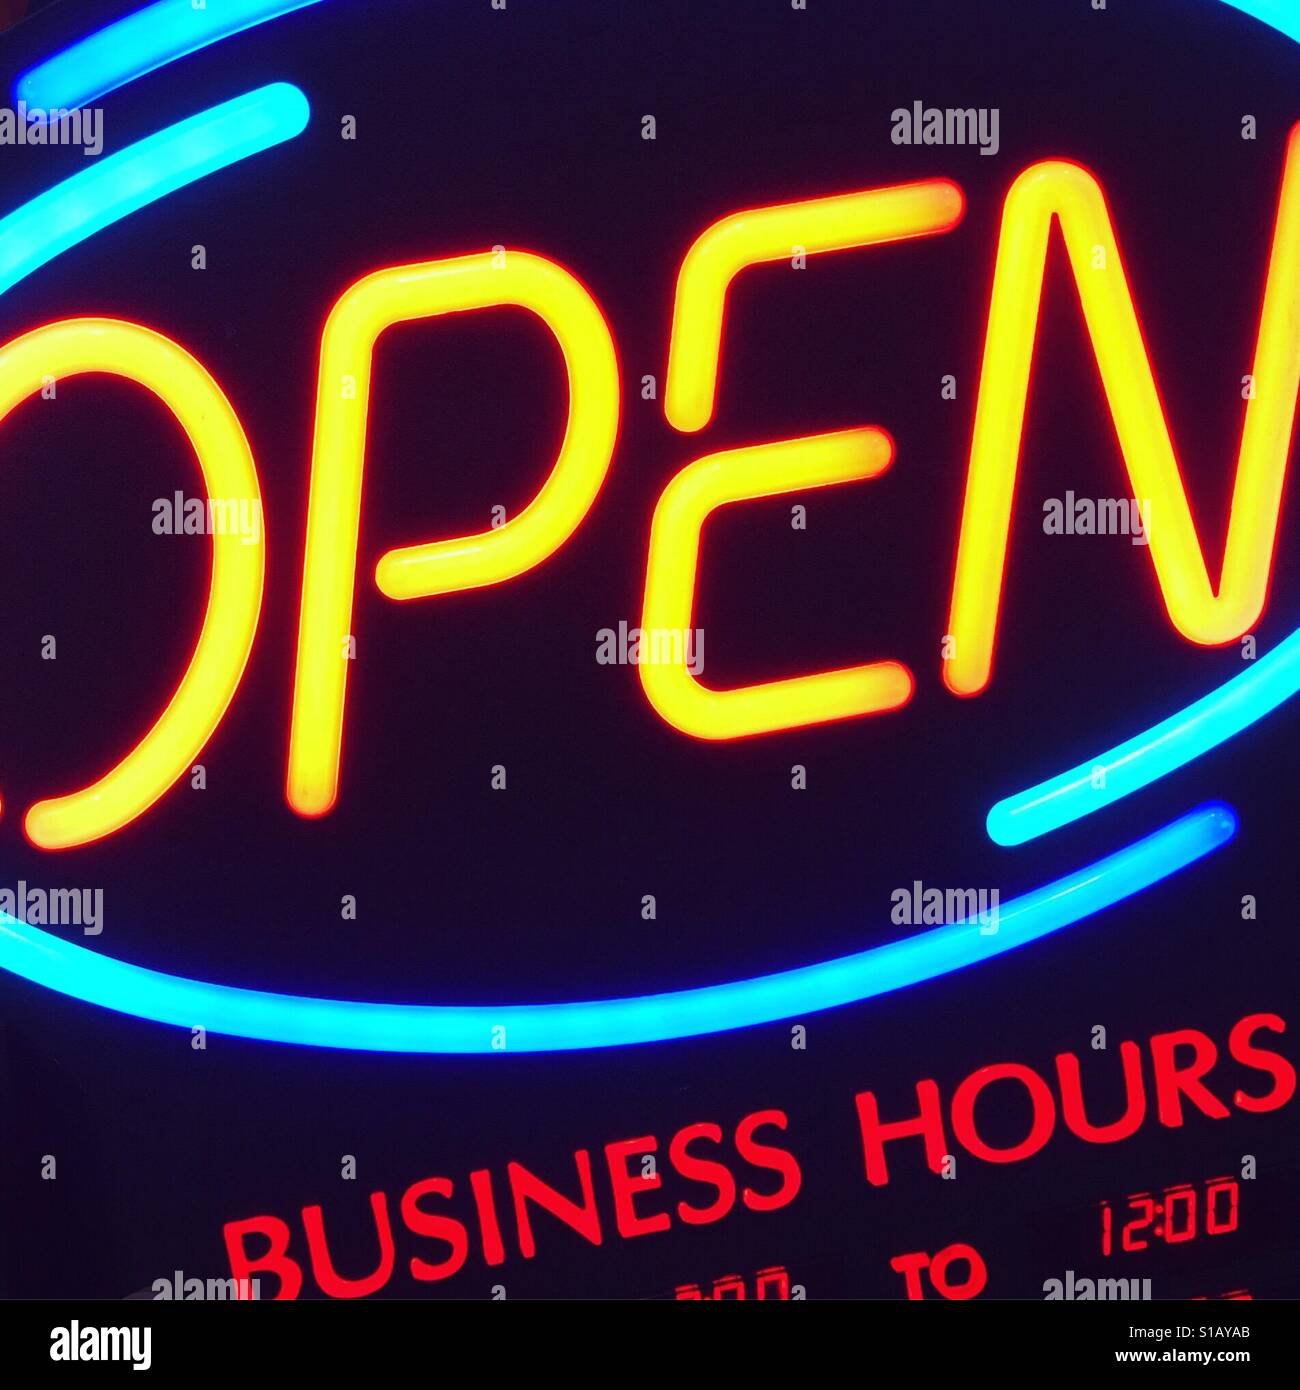 Business hours by K.R. - Stock Image